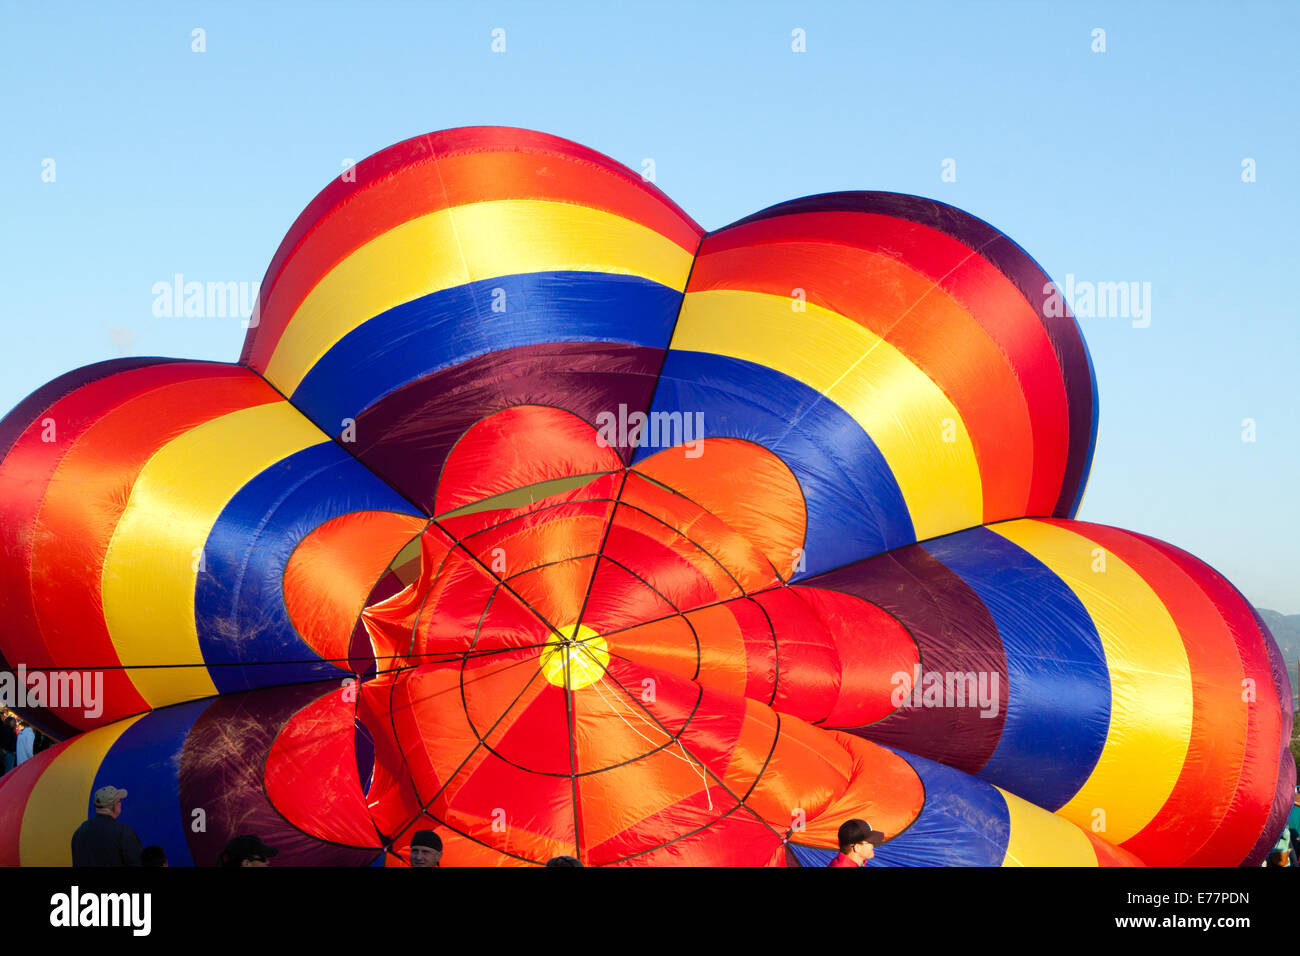 Top of canopy of a partially inflated hot air balloon against a blue sky Stock Photo